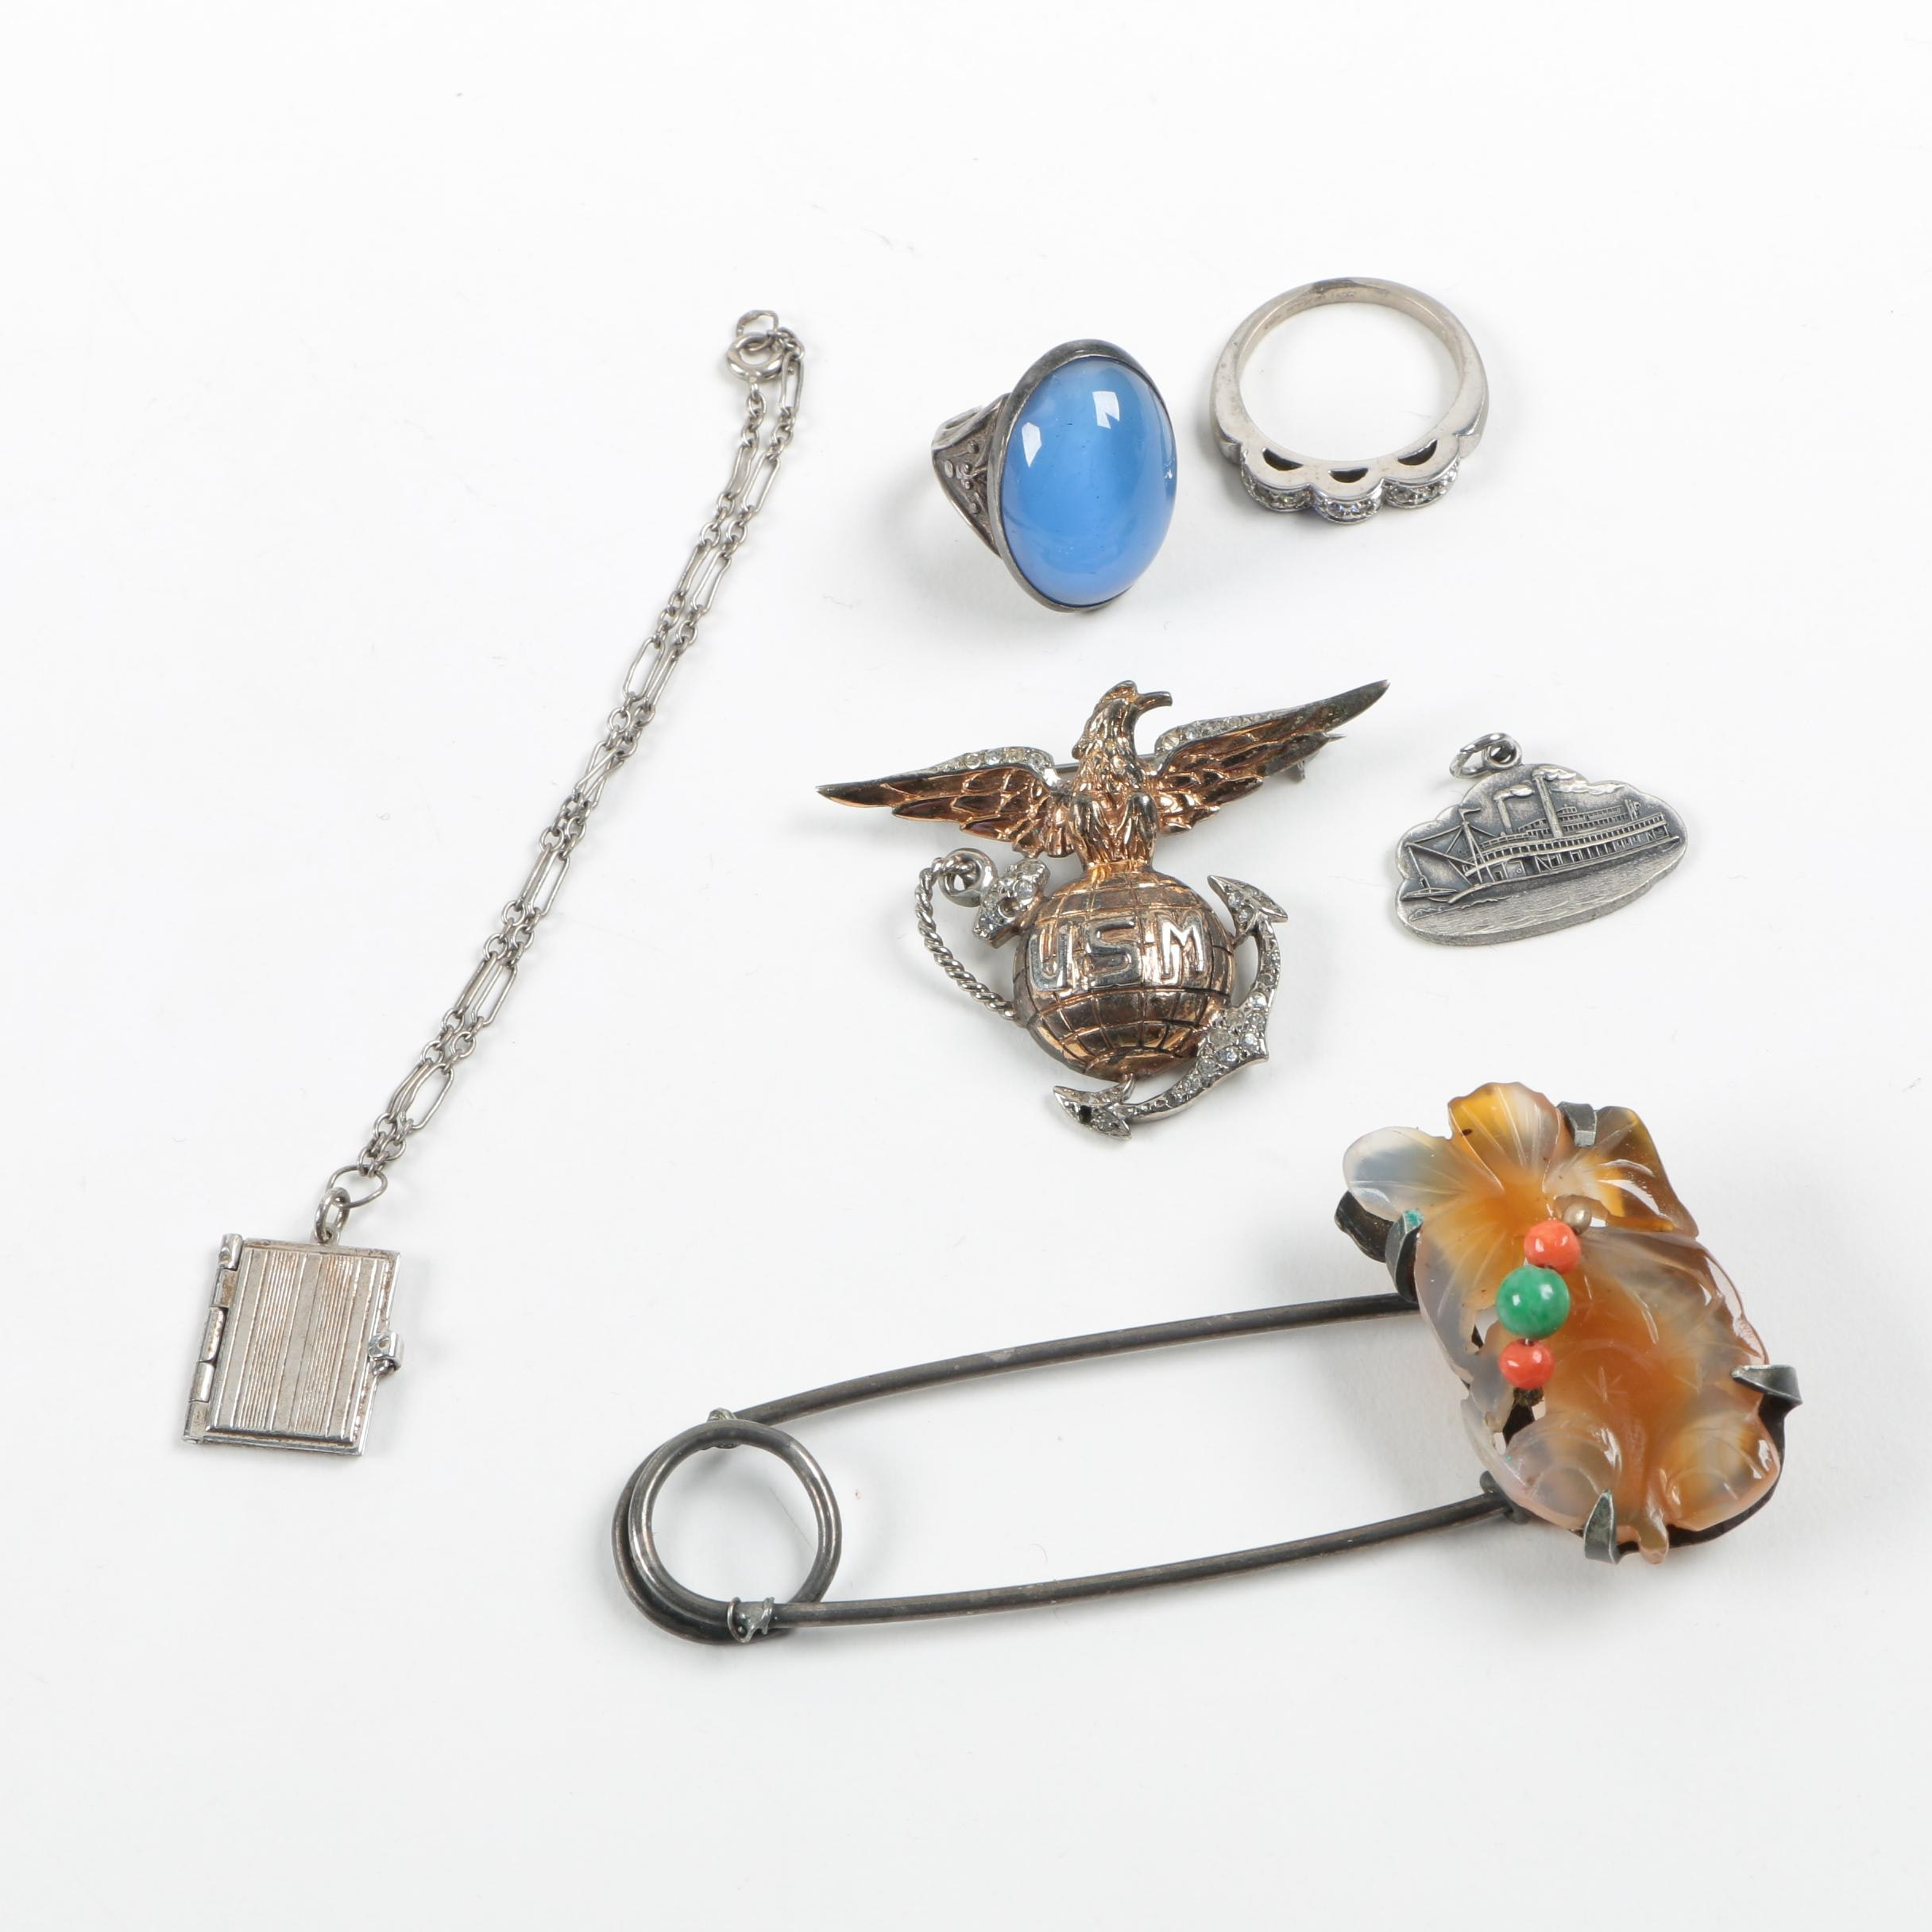 costume jewelry assortment featuring vintage sterling